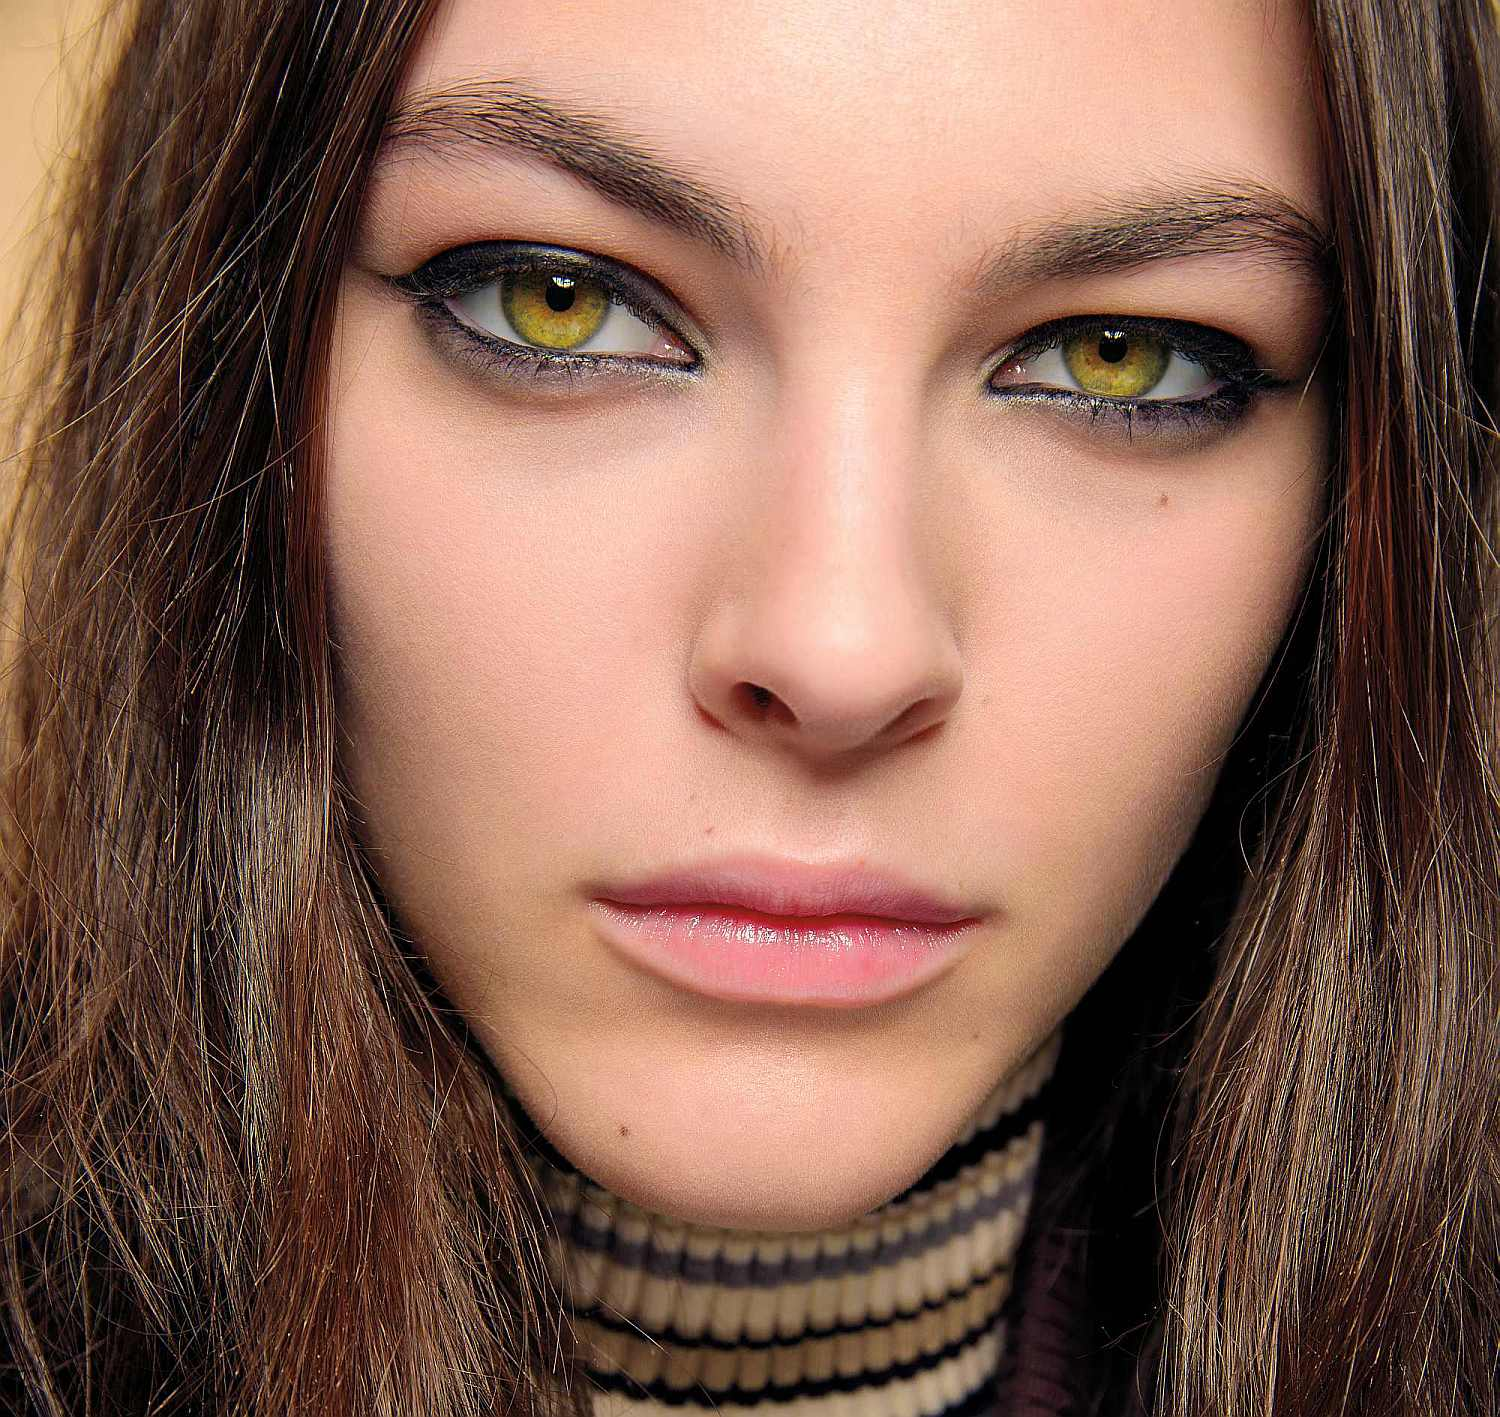 a model backstage at the Chloe AW17 catwalk show